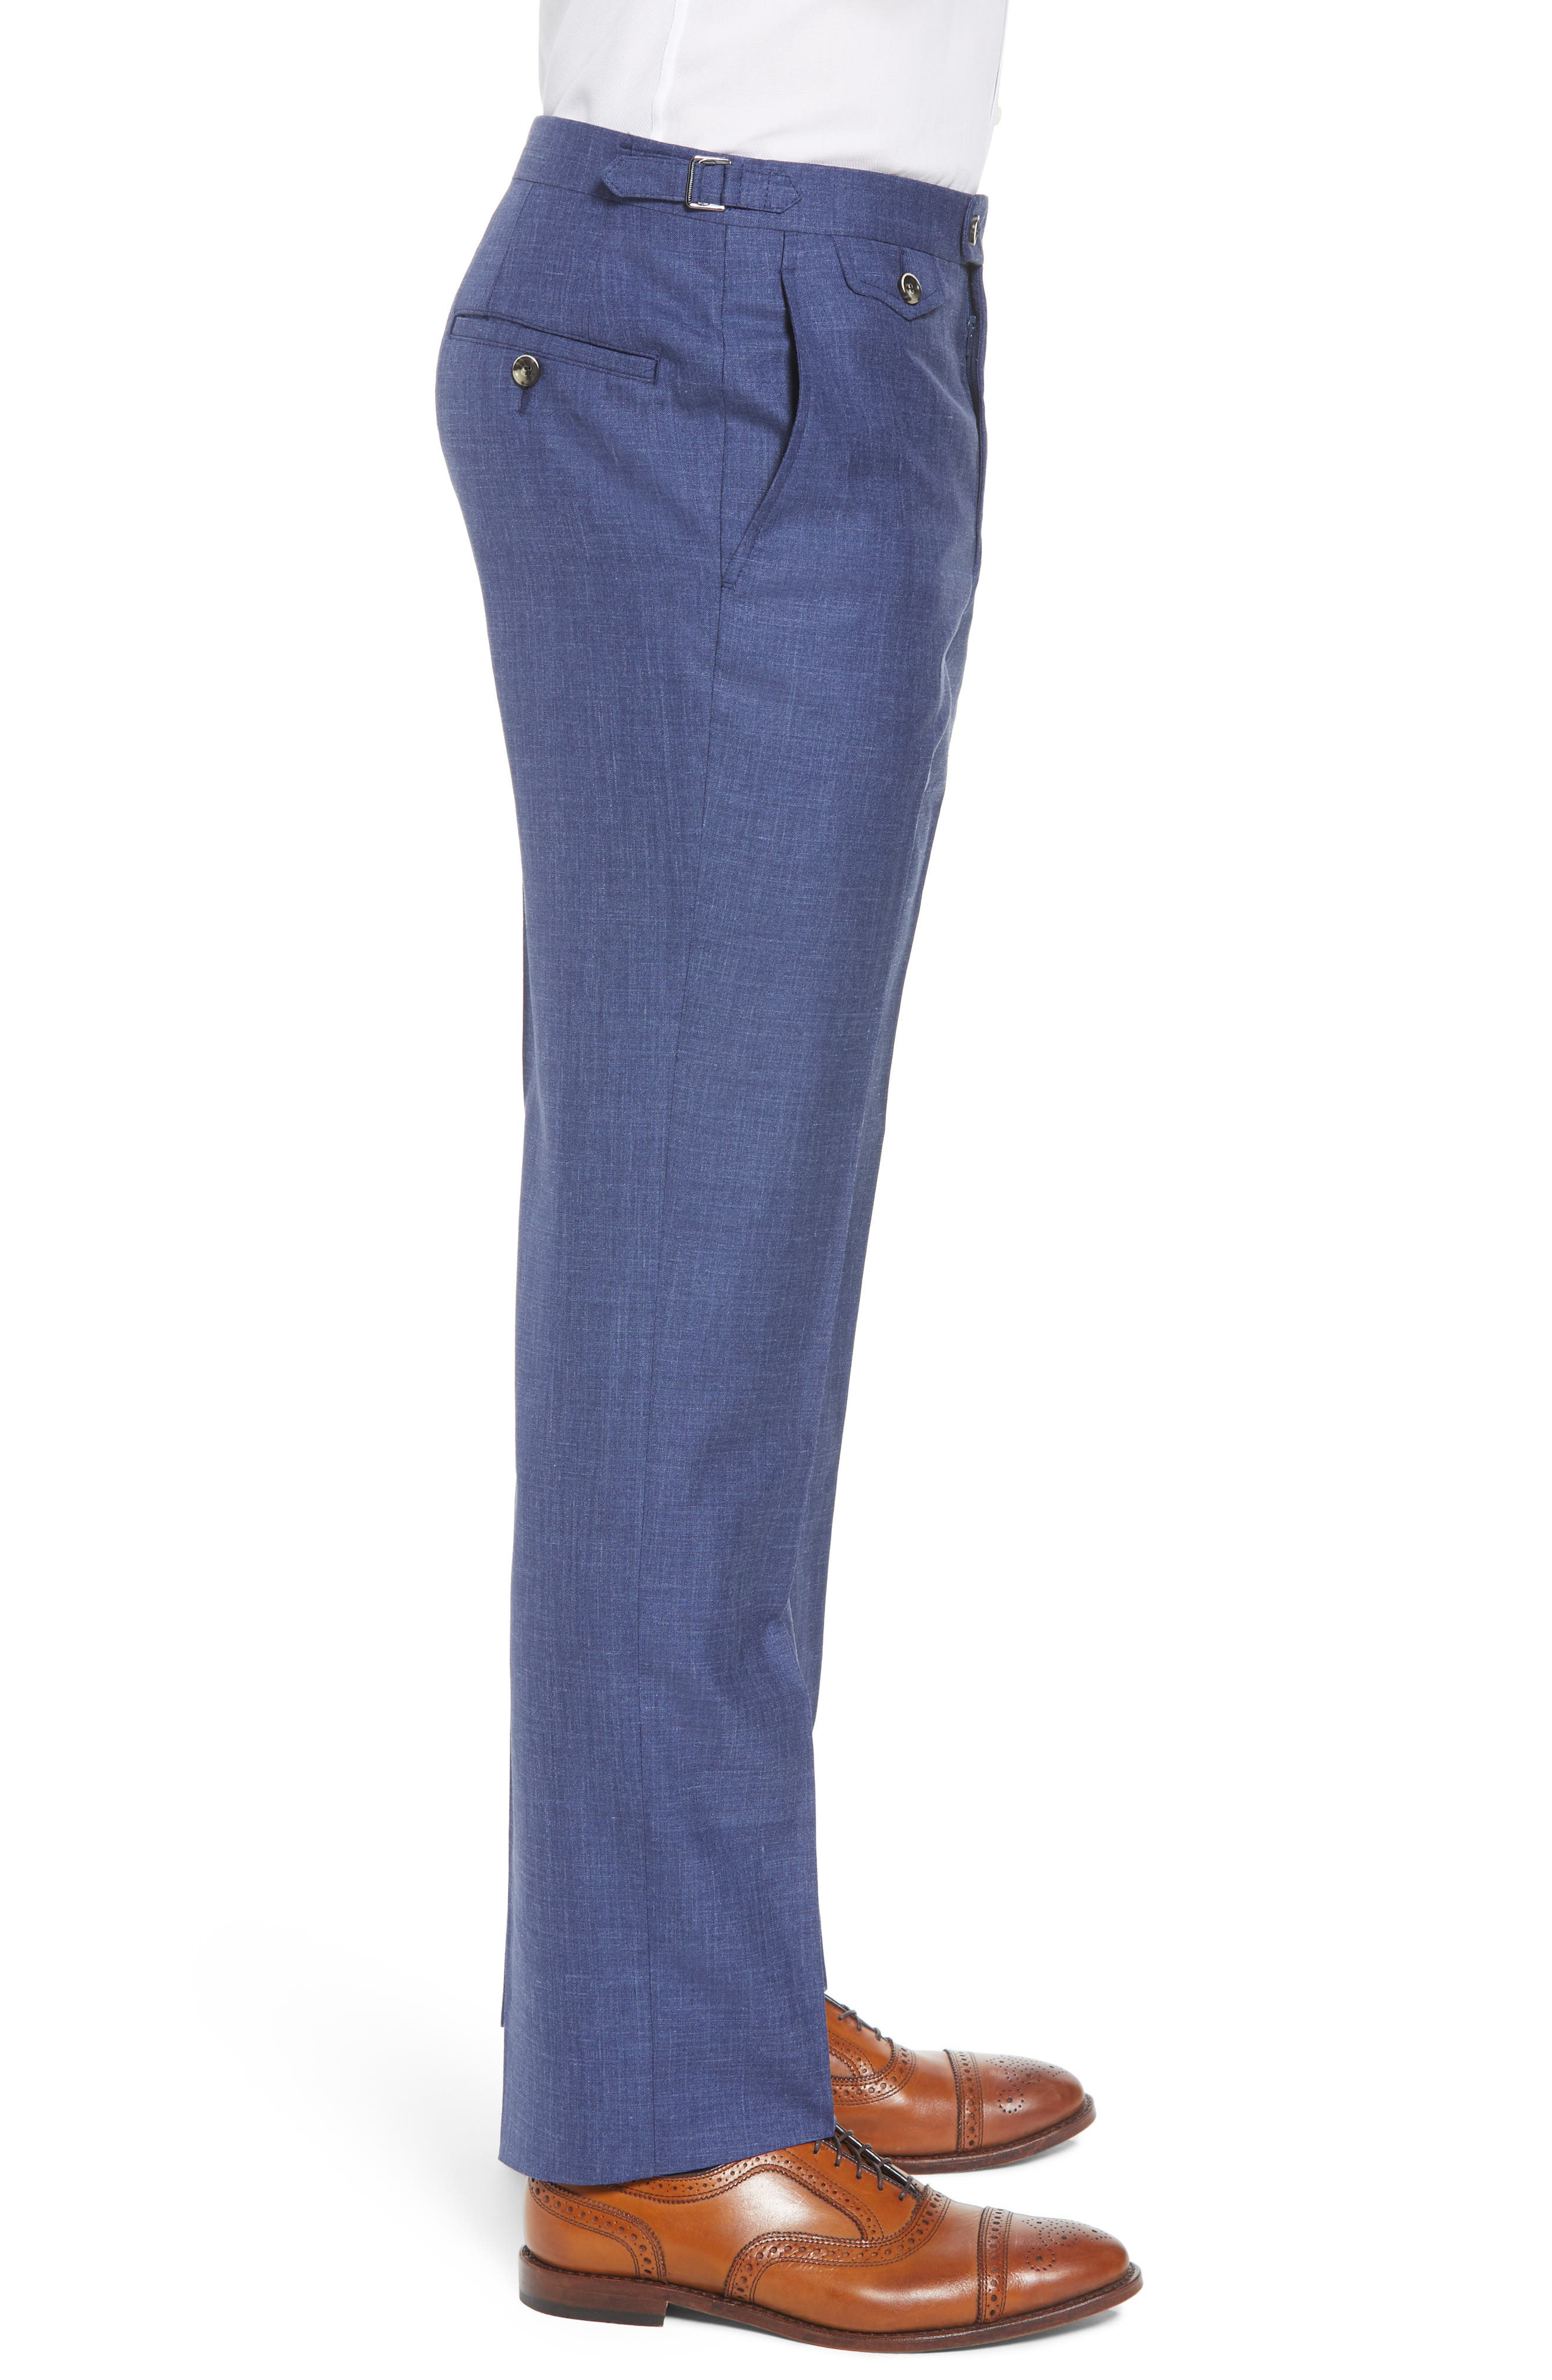 B Fit Flat Front Solid Wool Blend Trousers,                             Alternate thumbnail 3, color,                             BLUE SOLID